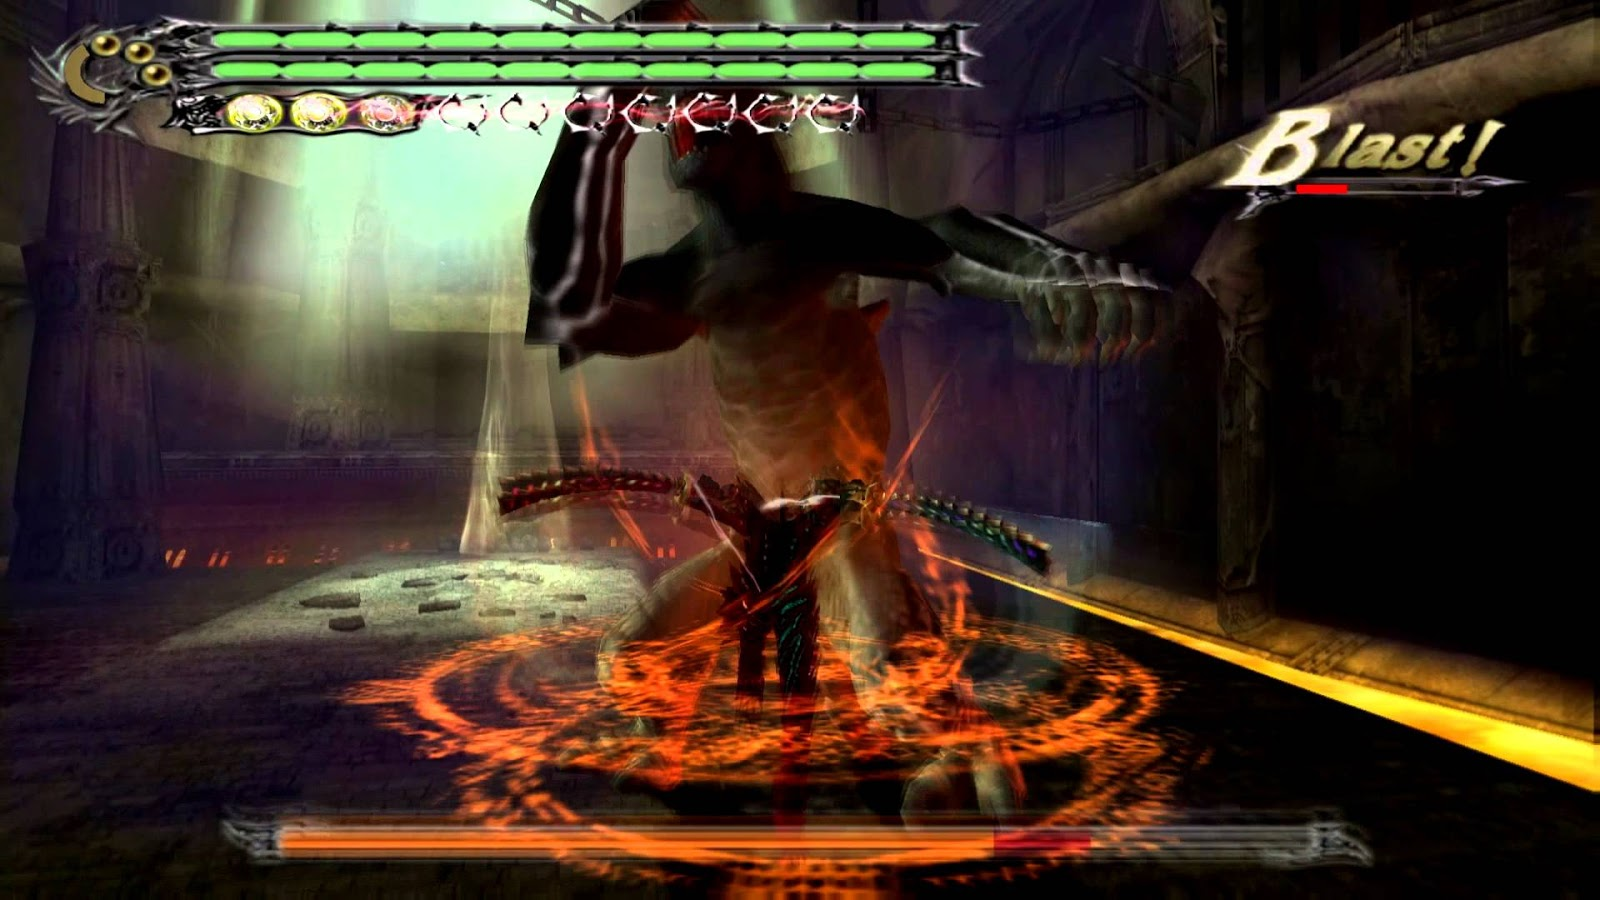 Devil Maycry 3 highly compressed [180MB] - HCG